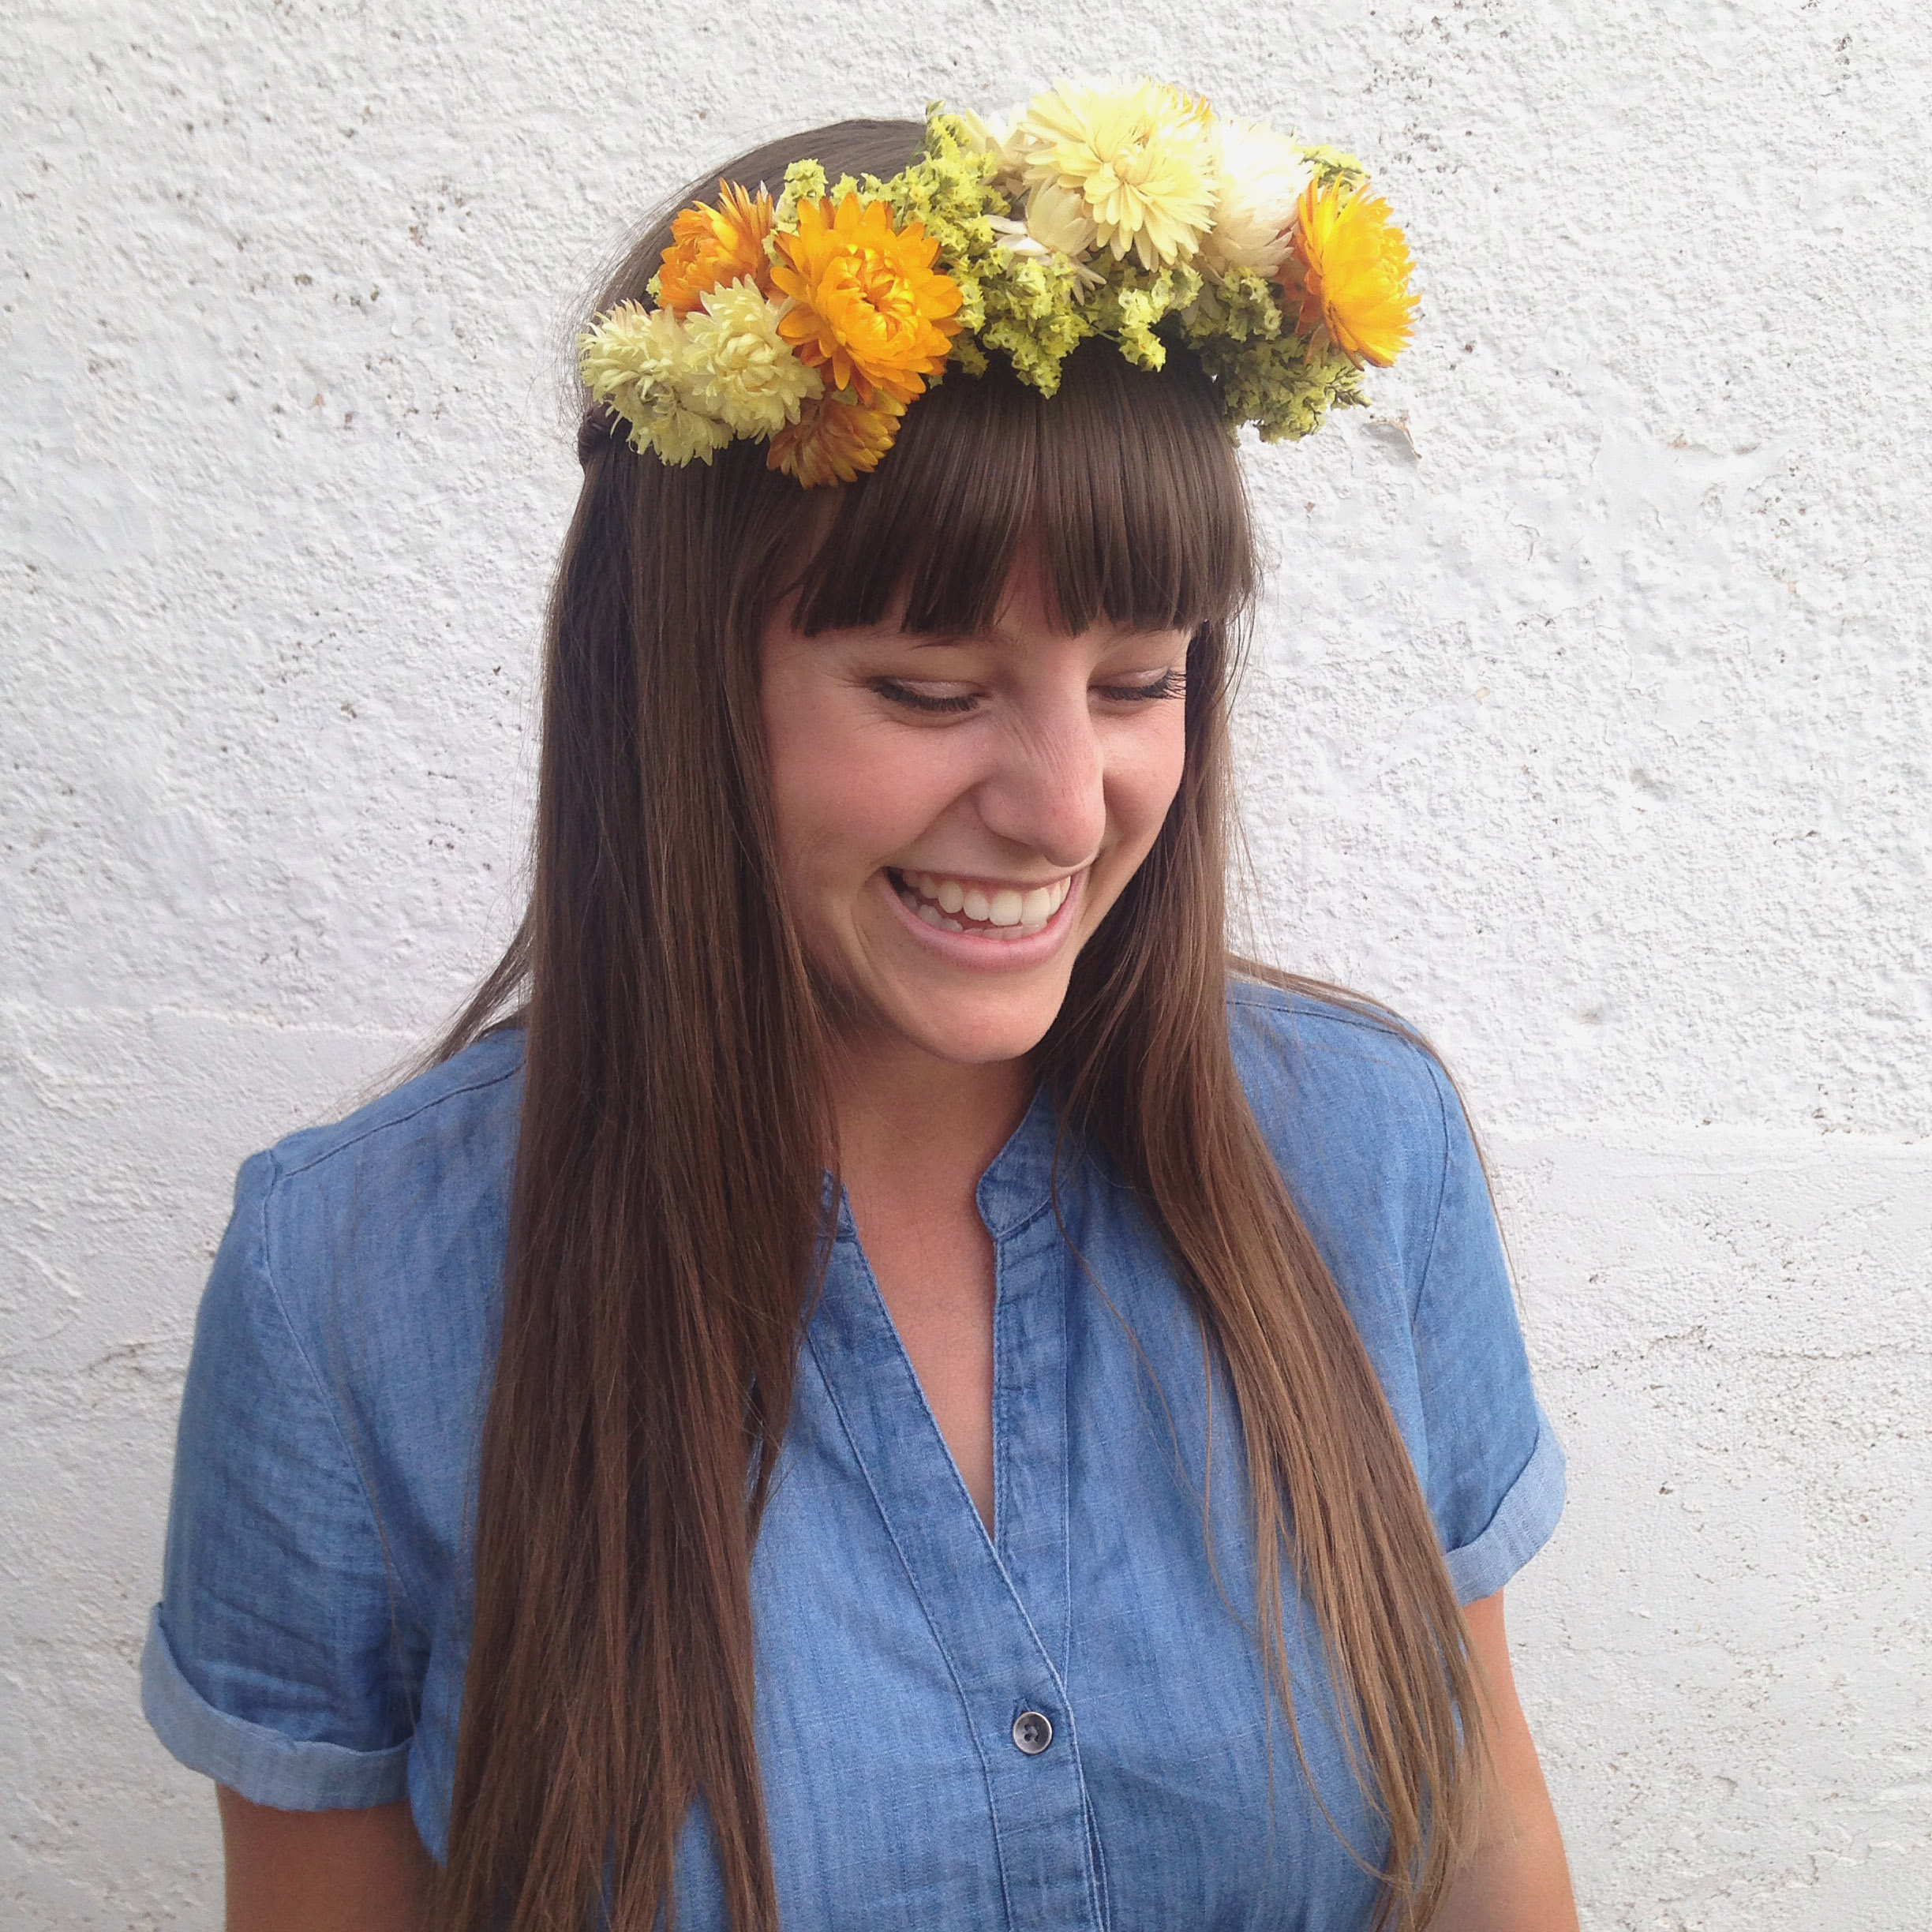 Kelsey Collins, Non-Profit Coordinator & Events Team   Kelsey Collins is a Tucson transplant who fell in love with the Old Pueblo after visiting a few years ago. She and her husband are downtown-dwellers, and they can often be found walking downtown or around the university, popping into shops and eating their way through the culinary delights of the city. By day Kelsey is a preschool teacher, and at all hours an artist, most recently in the areas of hand lettering and embroidery. Her faith, community, and the beauty of the desert are her greatest inspirations to create.  Find her work at  etsy.com/shop/ShopKCo  & follow her daily adventures  here !